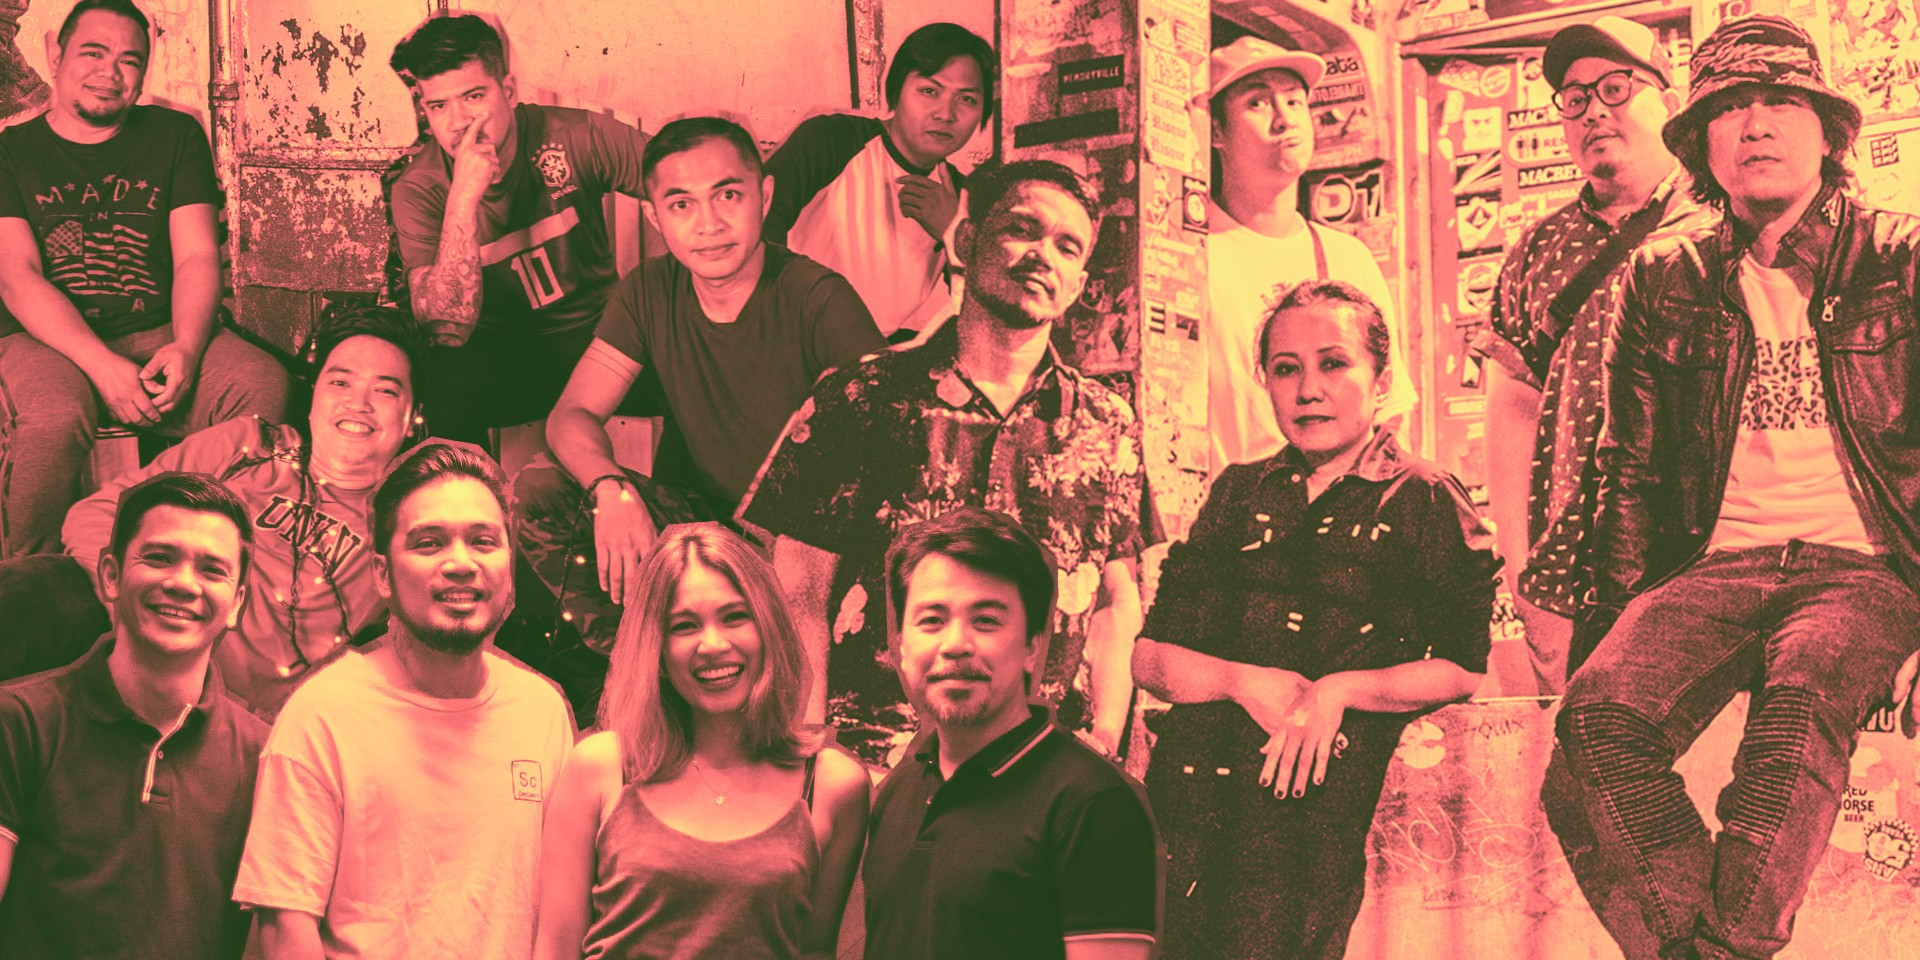 Sandwich, Moonstar88, and Banda Ni Kleggy welcome December with new tunes and Christmas cheer – listen